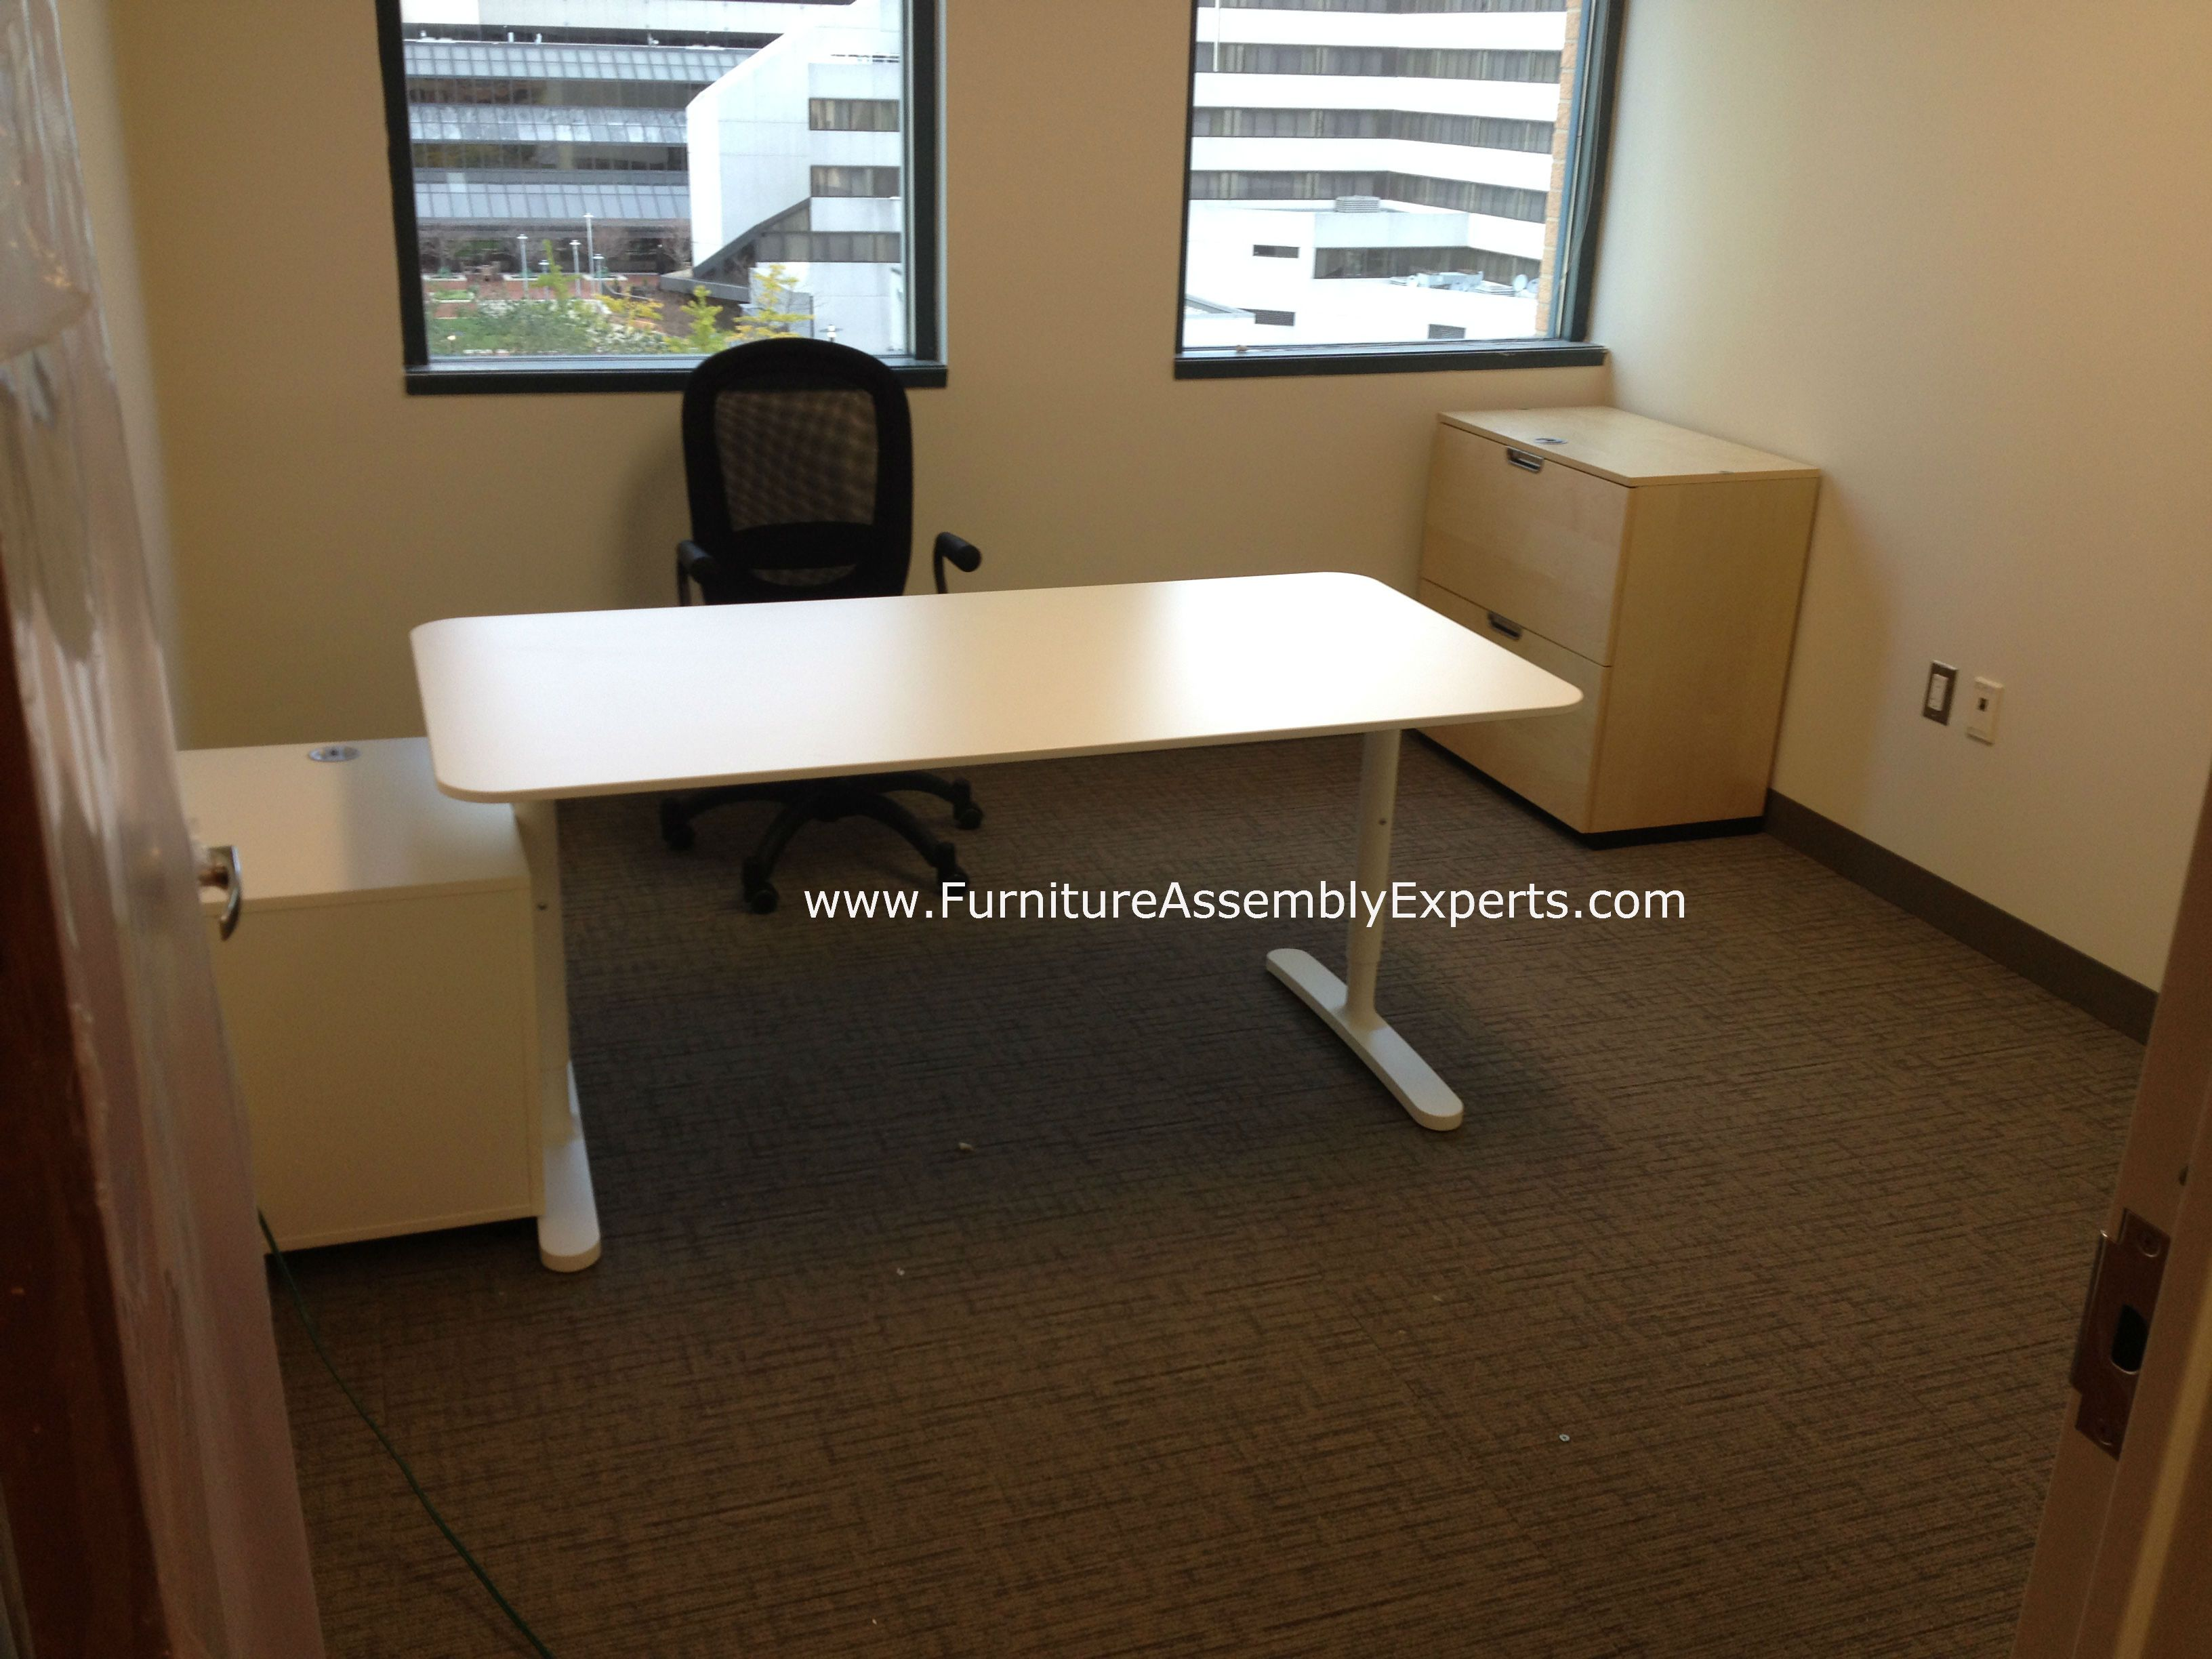 ikea bekant office desk and galant file cabinets assembled in